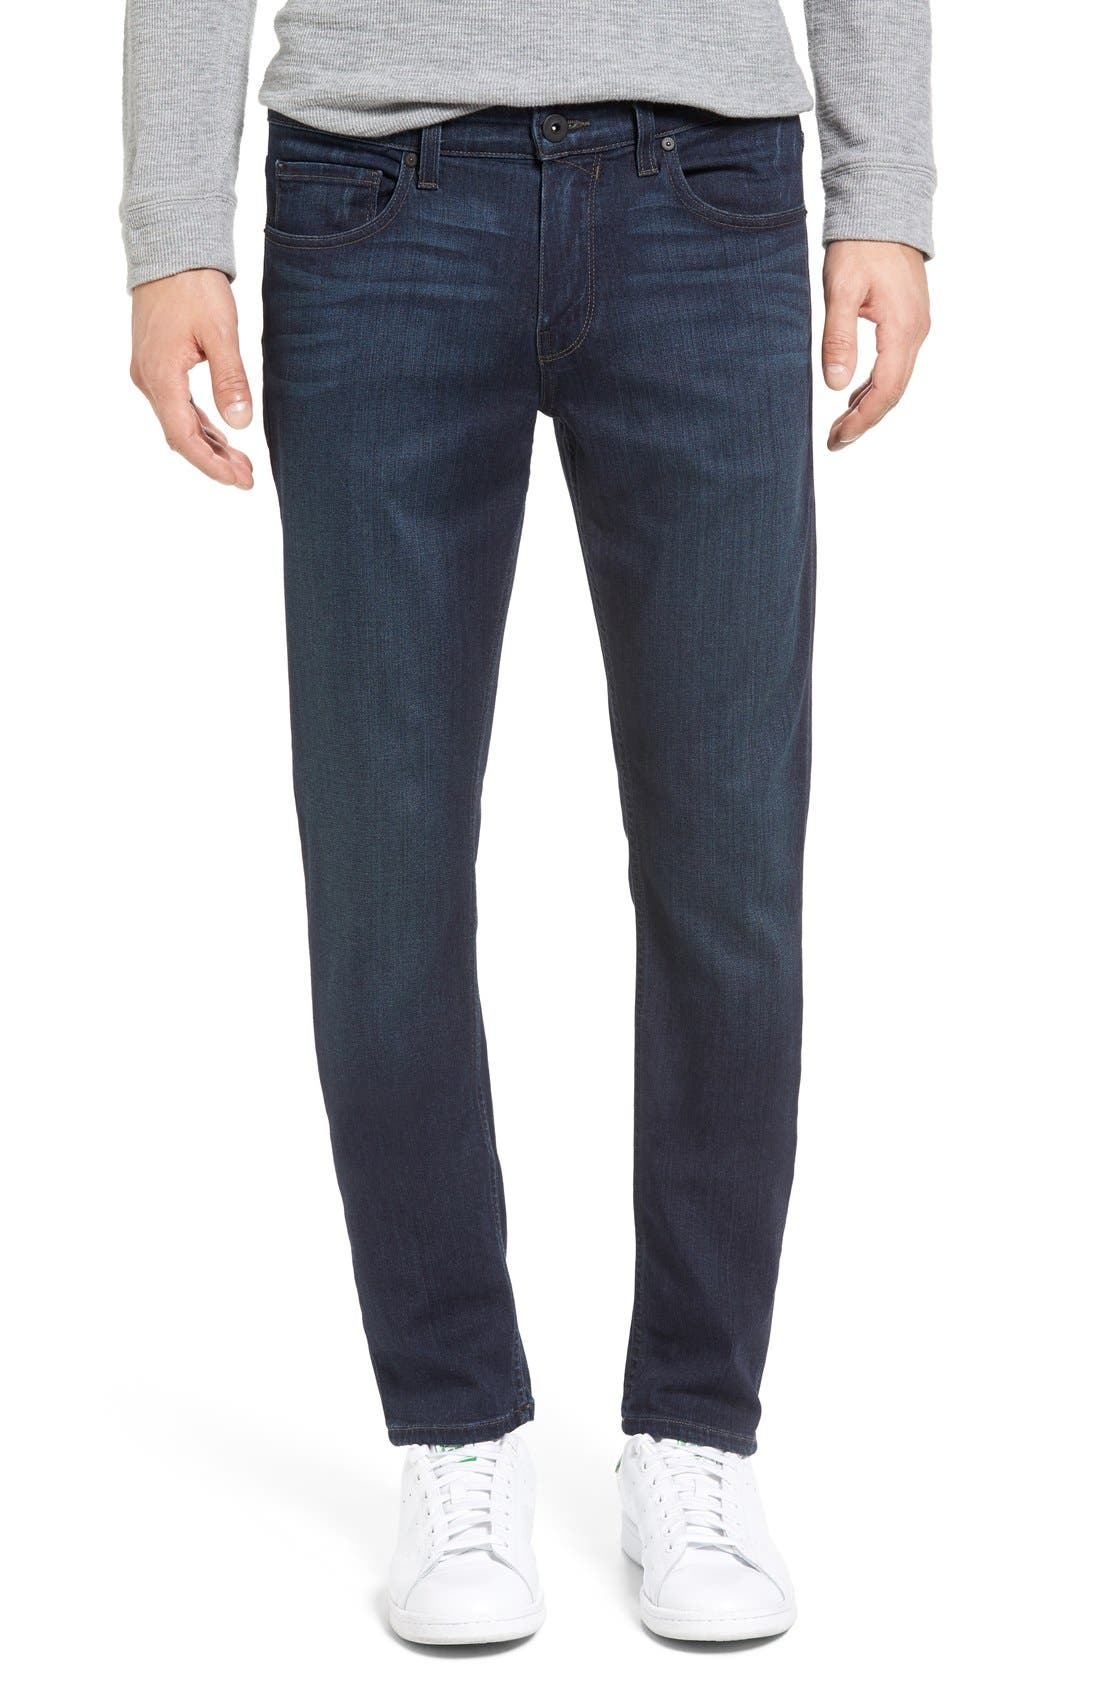 Transcend - Croft Skinny Fit Jeans,                             Main thumbnail 1, color,                             After Hours